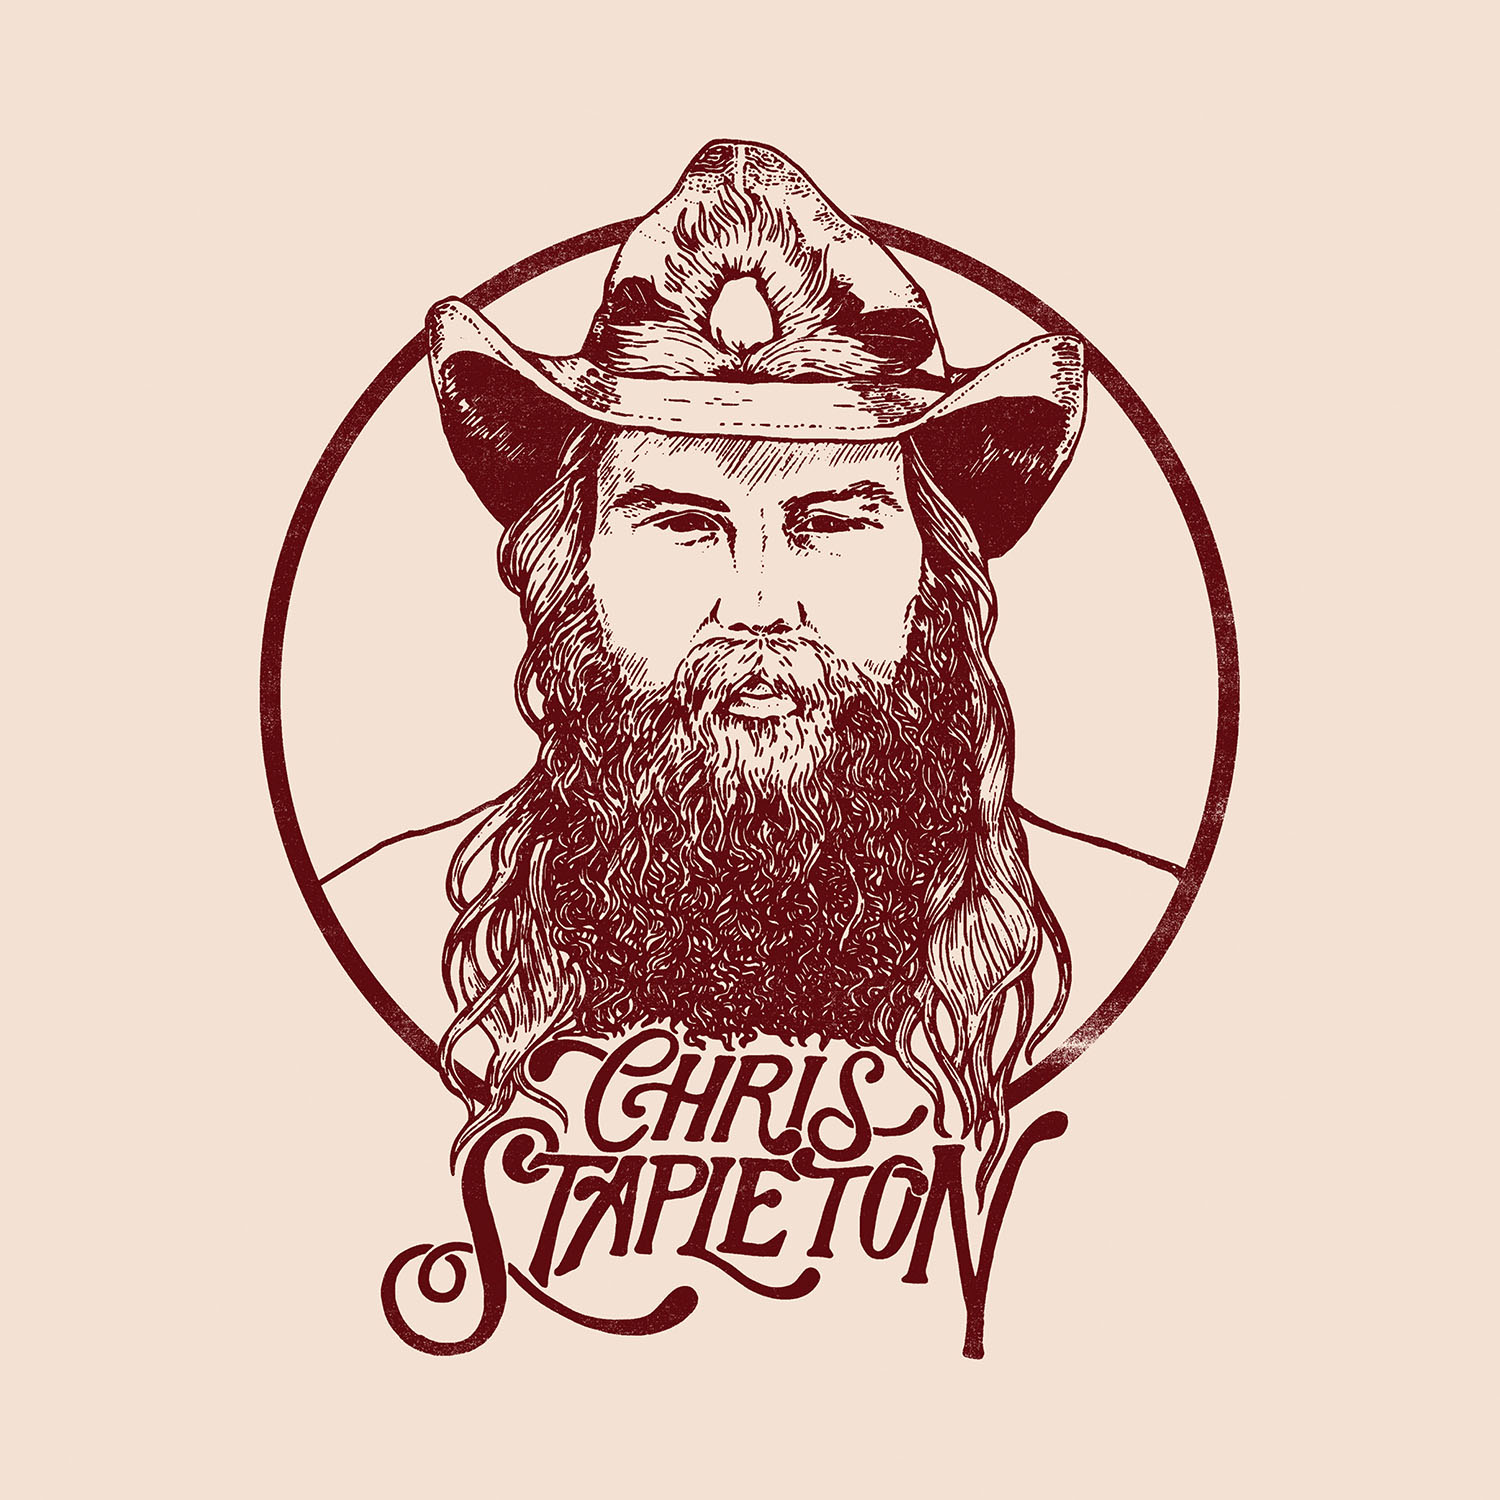 Chris Stapleton; Cover art courtesy Universal Music Group Nashville